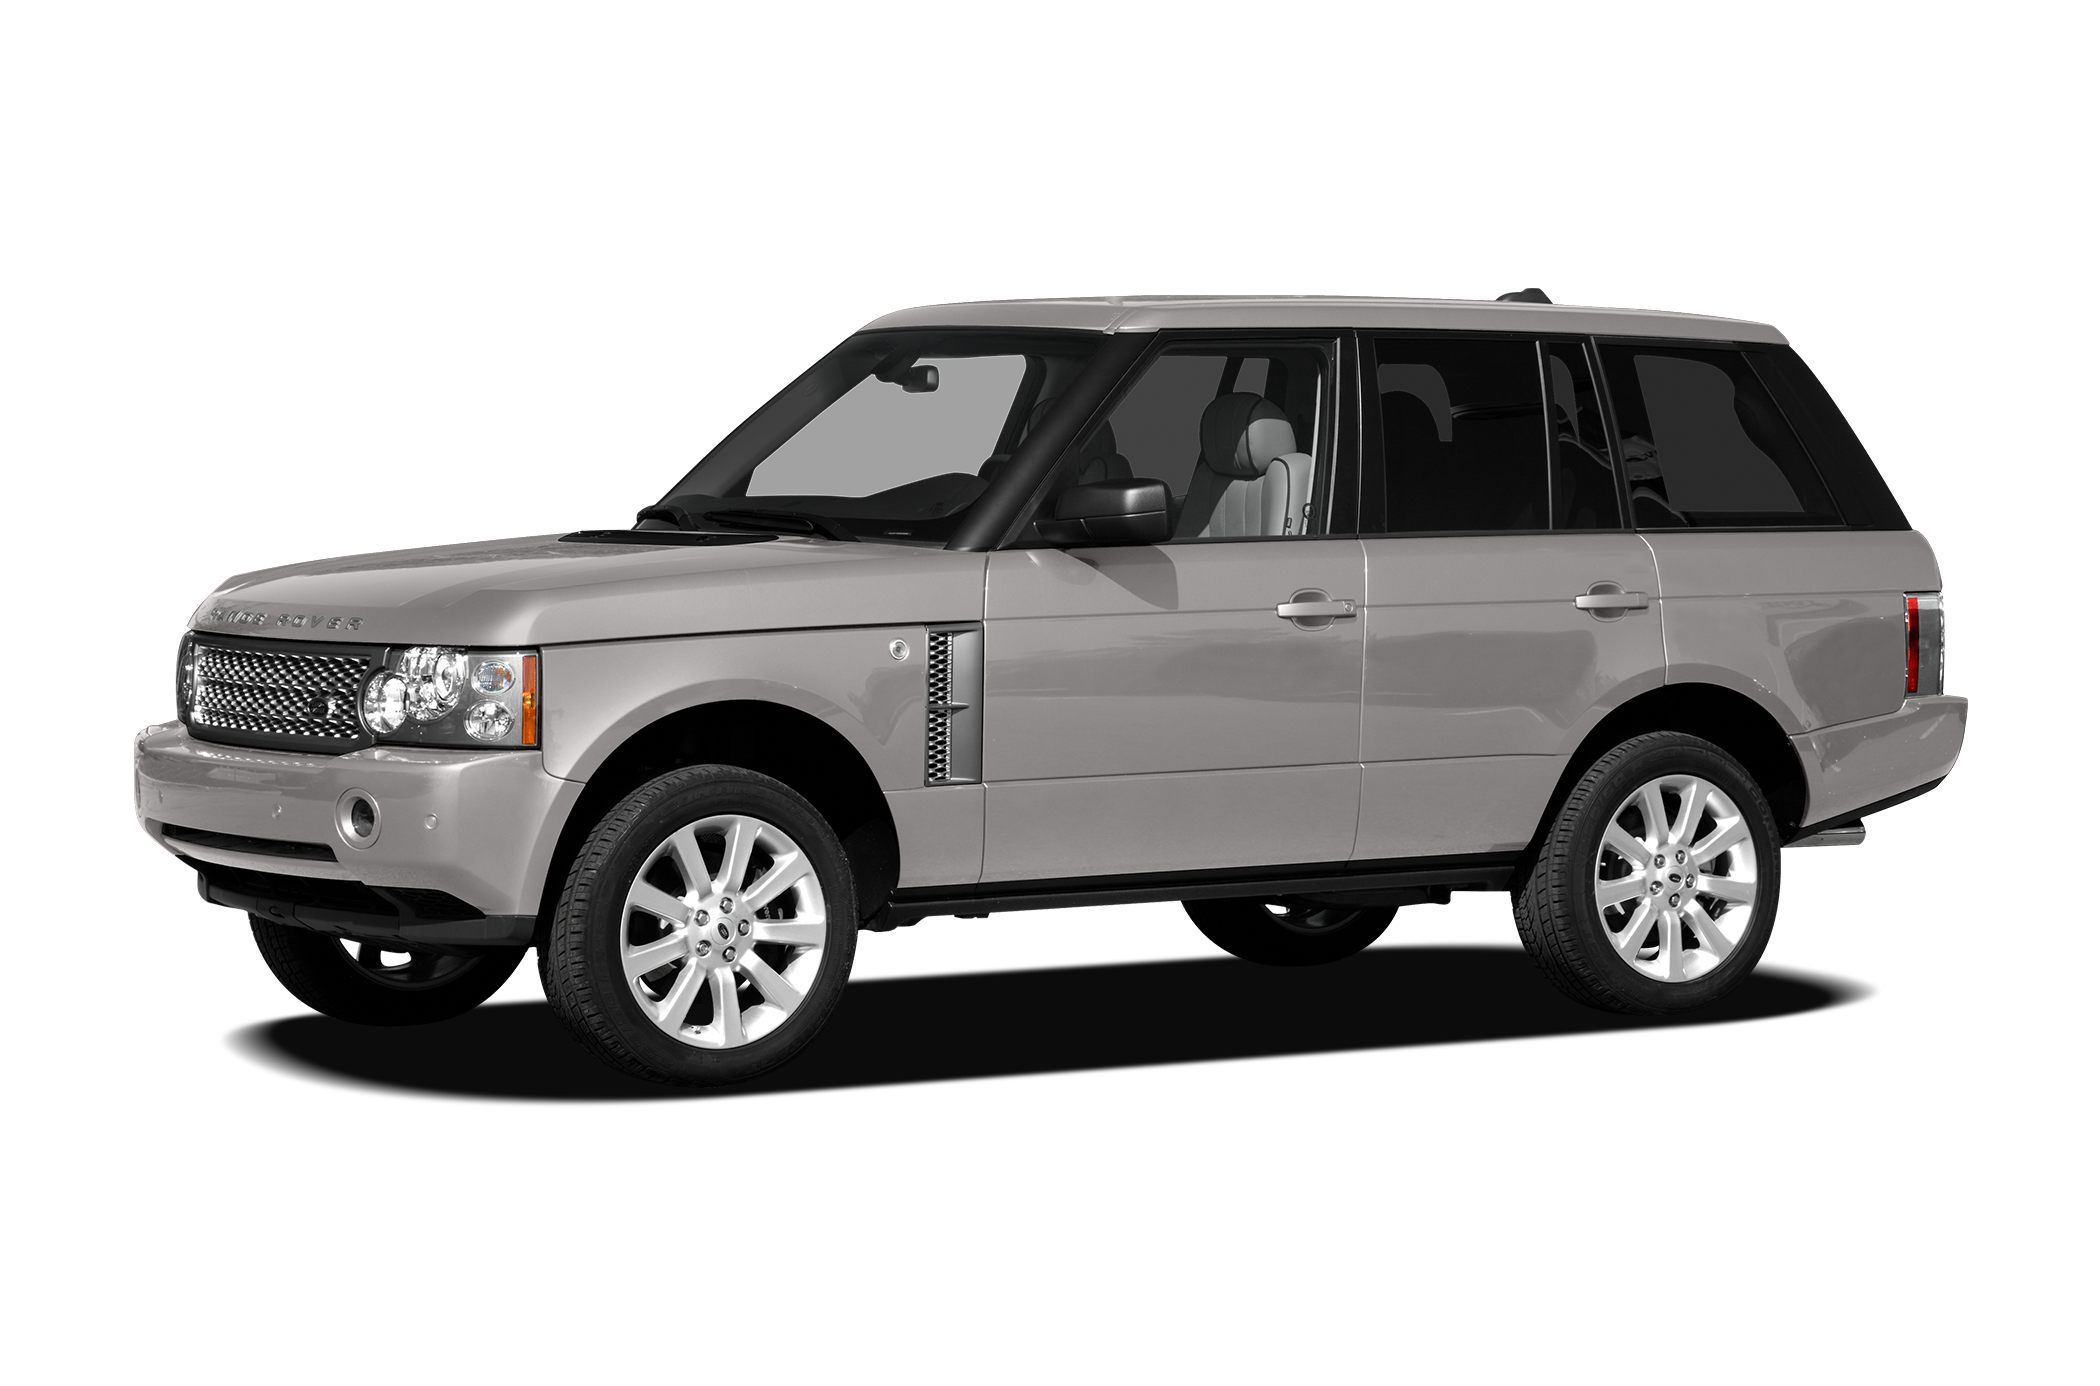 2008 Land Rover Range Rover Supercharged SUV for sale in Dallas for $29,988 with 68,706 miles.